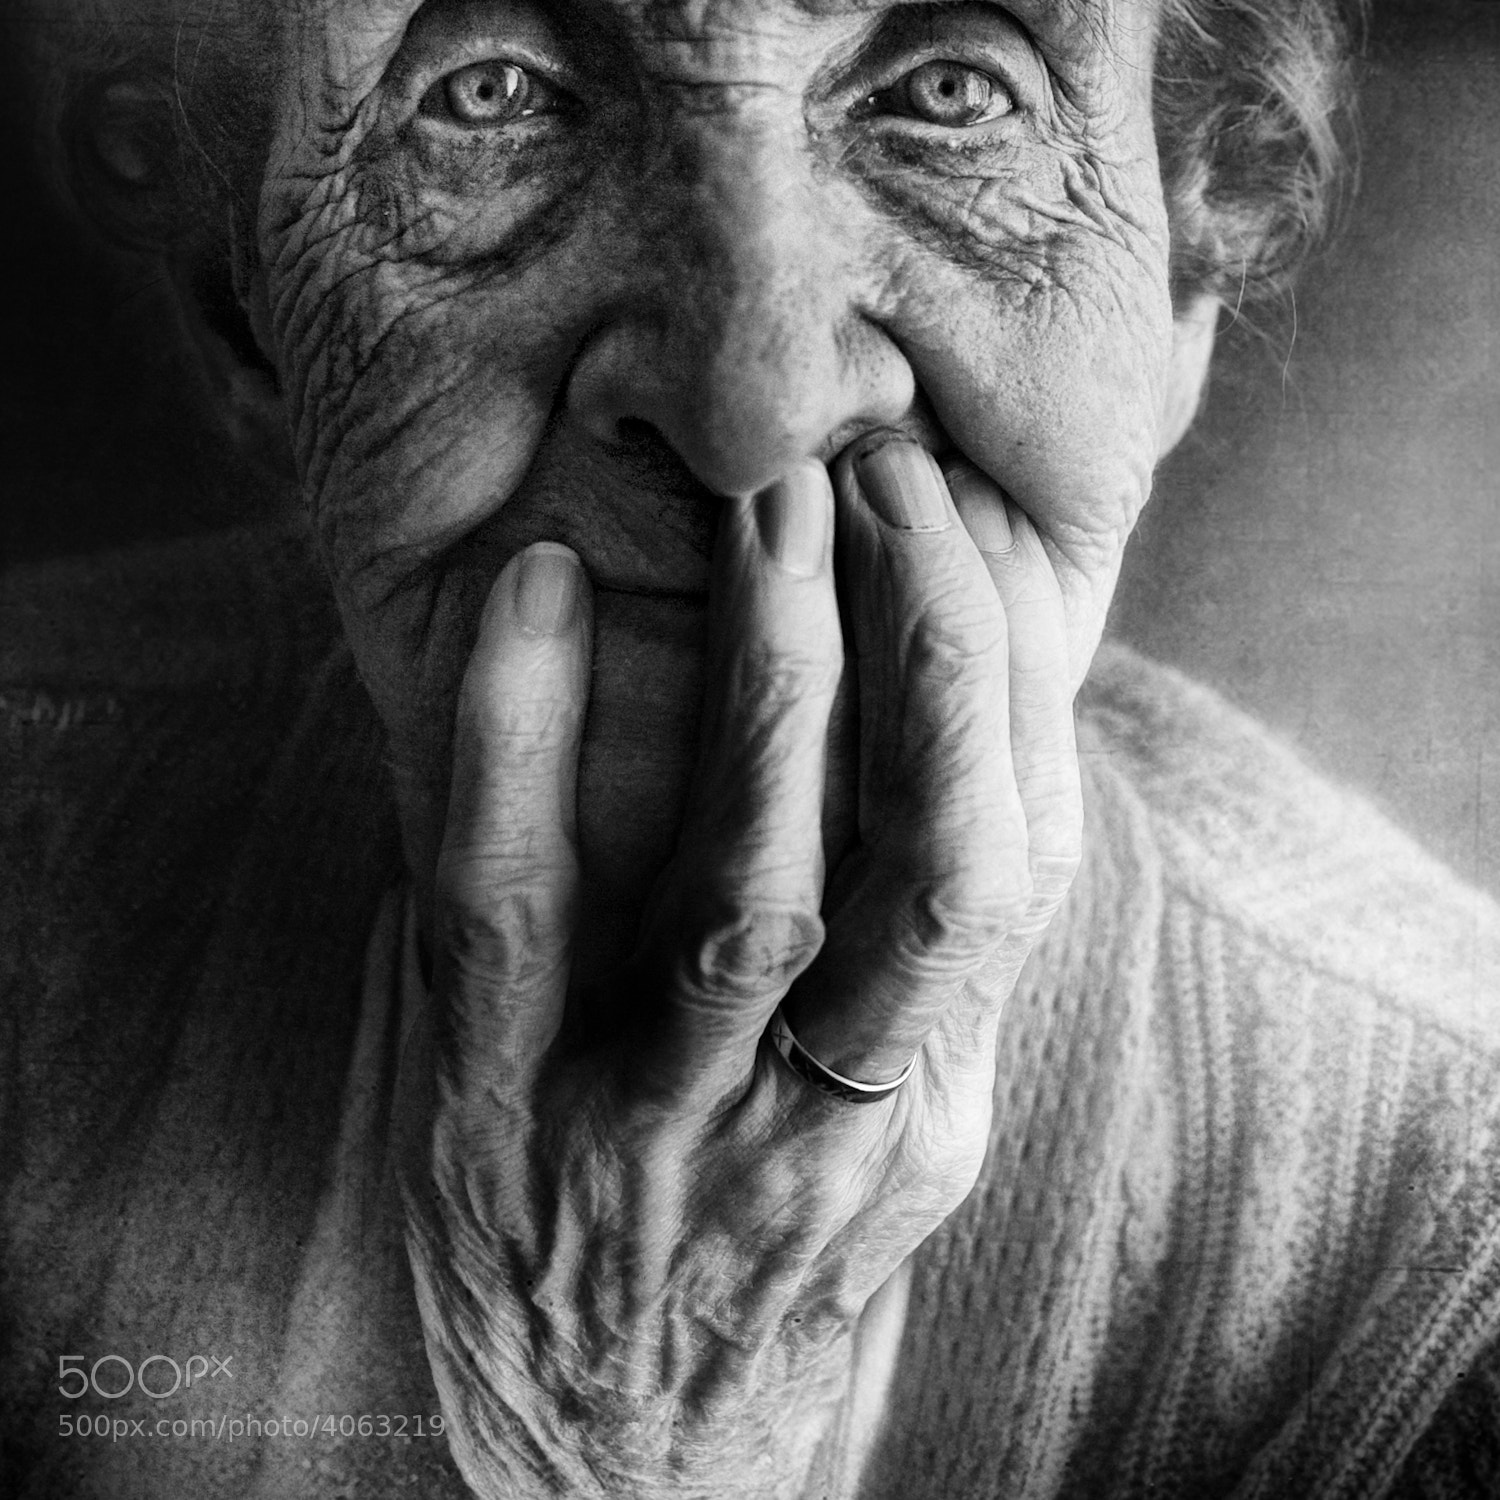 Photograph <b>Café con leche & pan dulce</b> by Lee Jeffries on 500px